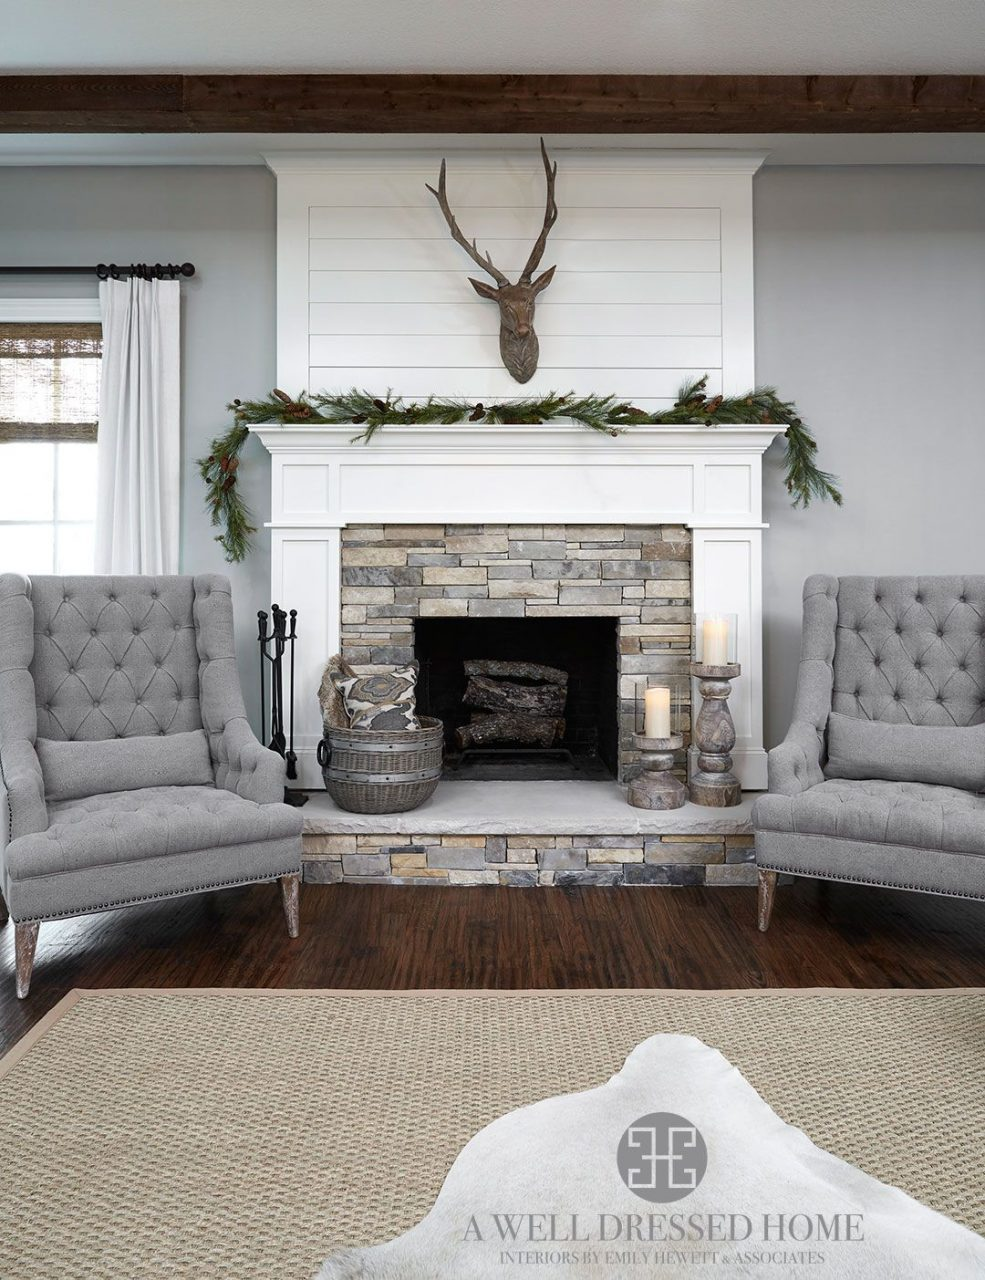 Aledo Project Tv Room A Well Dressed Home Shiplap Fireplace